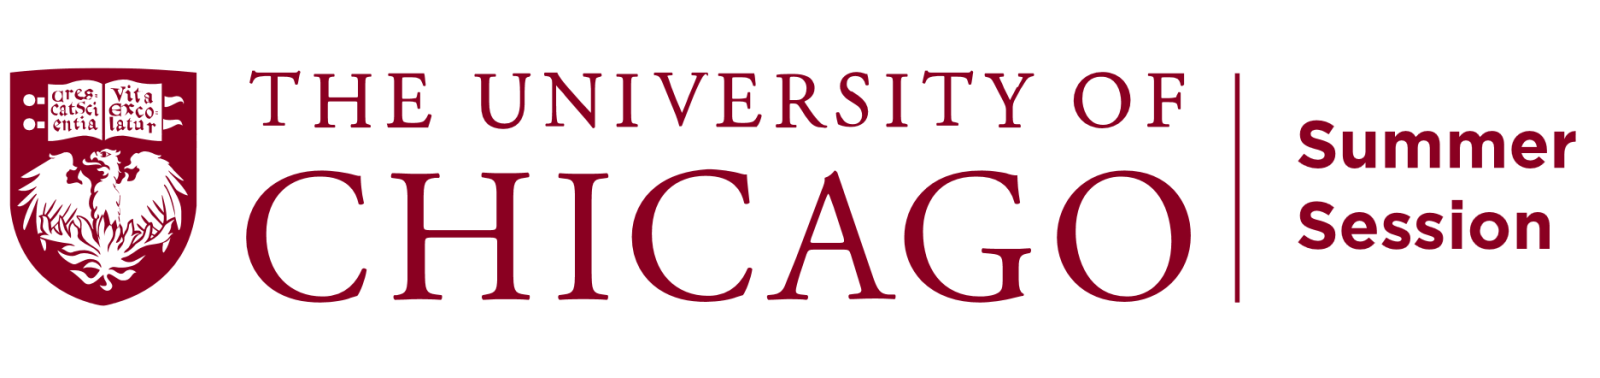 The University of Chicago | Summer Session